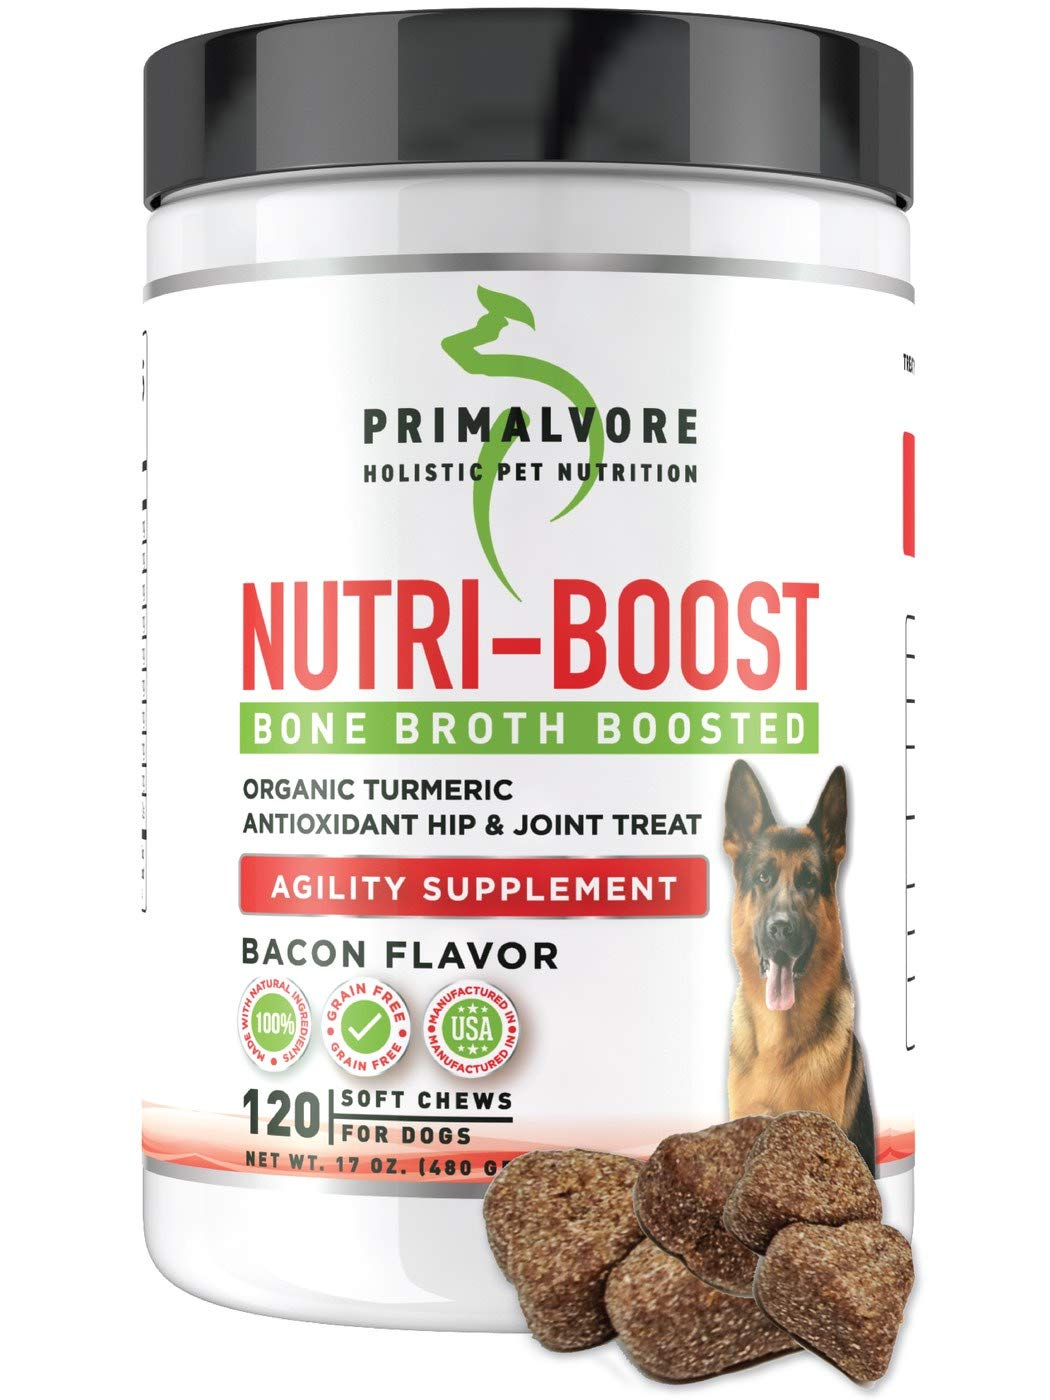 Primalvore Dog Joint Arthritis Pain Relief Supplement - with Yucca Schidigera, Cod Liver Oil, PurforMSM, Glucosamine HCL and Chondroitin Sulfate Increases Overall Activity in Dogs